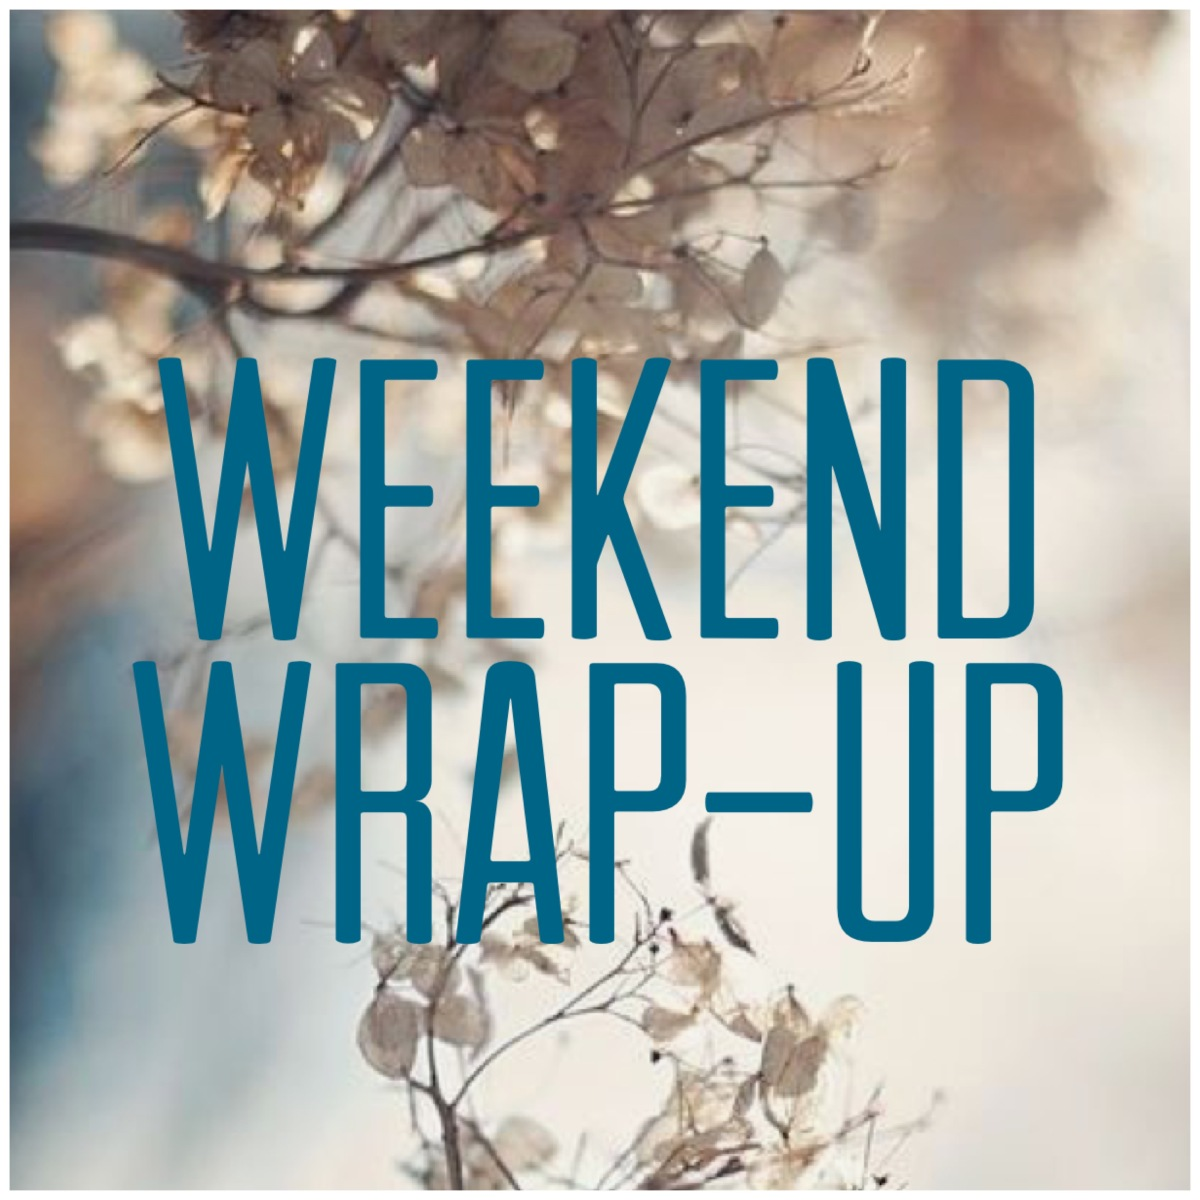 Weekend Wrap-up